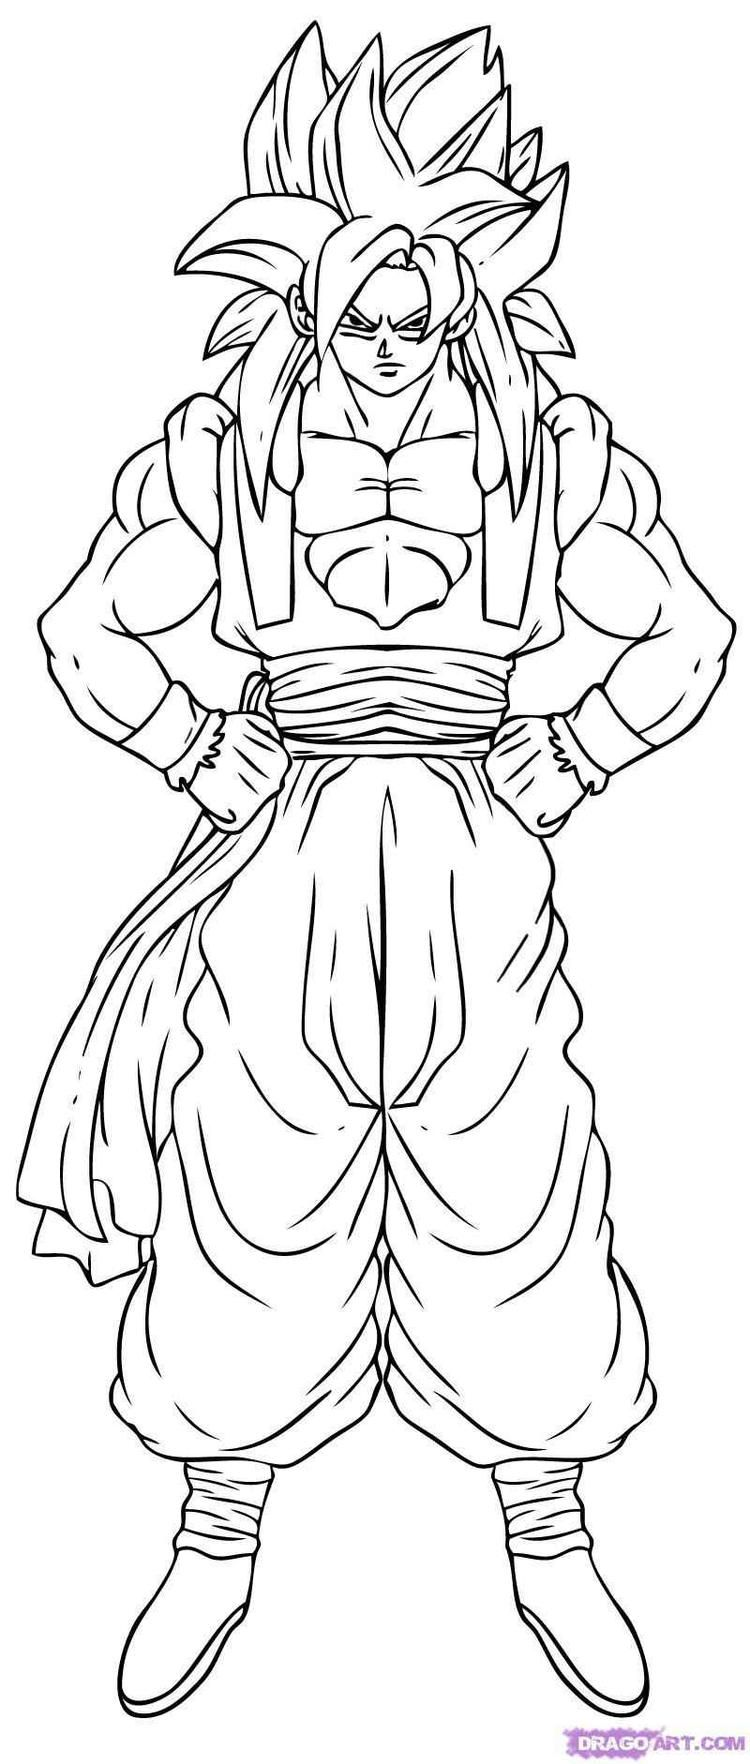 Dragon Ball Z Coloring Pages Goku Super Saiyan 4 Dragon Coloring Page Super Coloring Pages Cartoon Coloring Pages